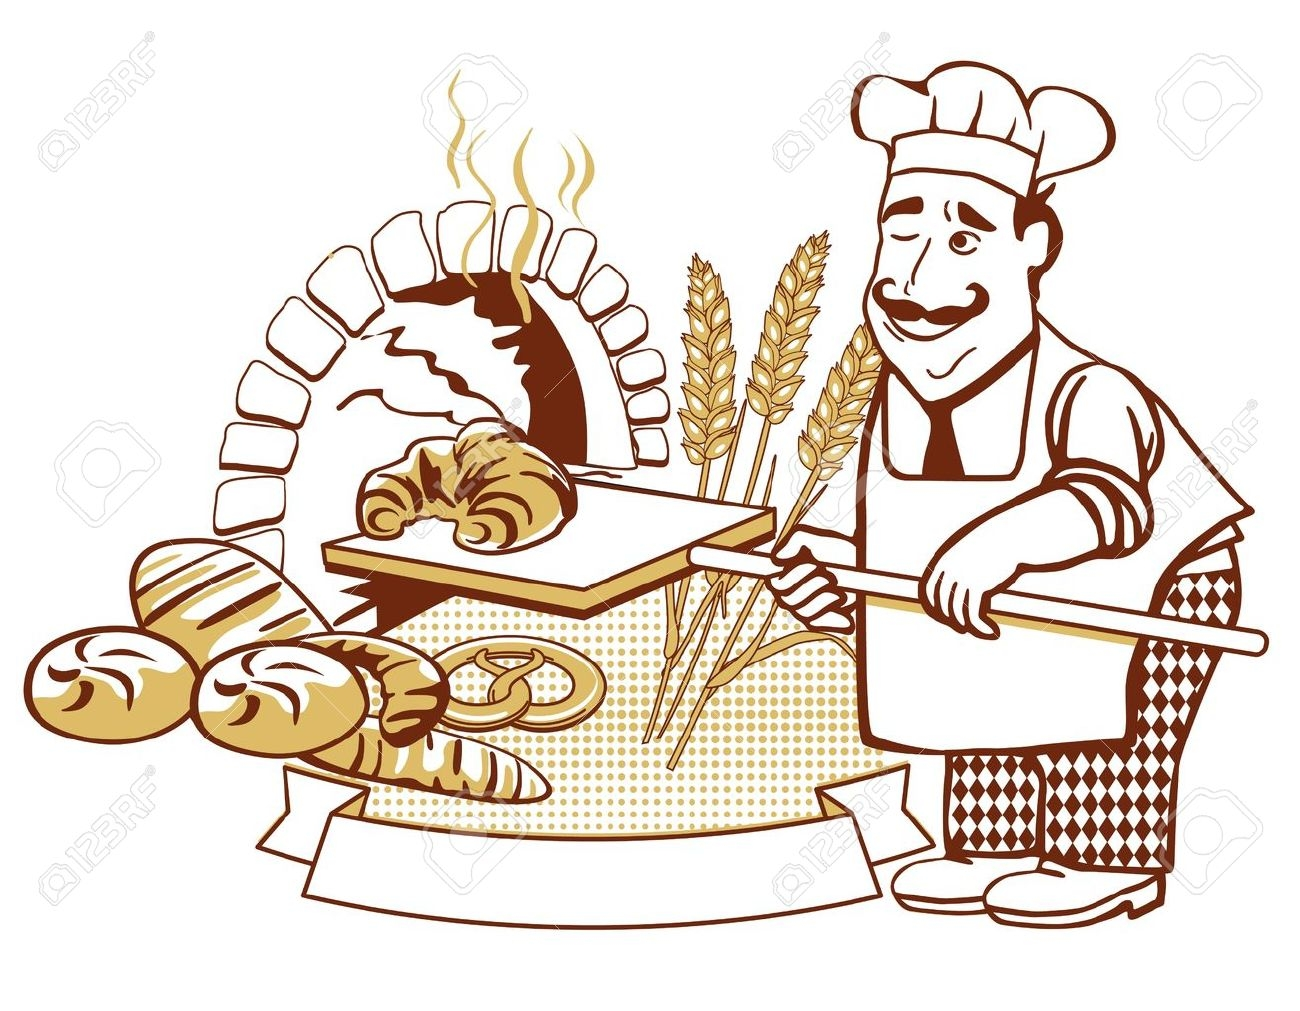 Awesome gallery digital collection. Bakery clipart baker